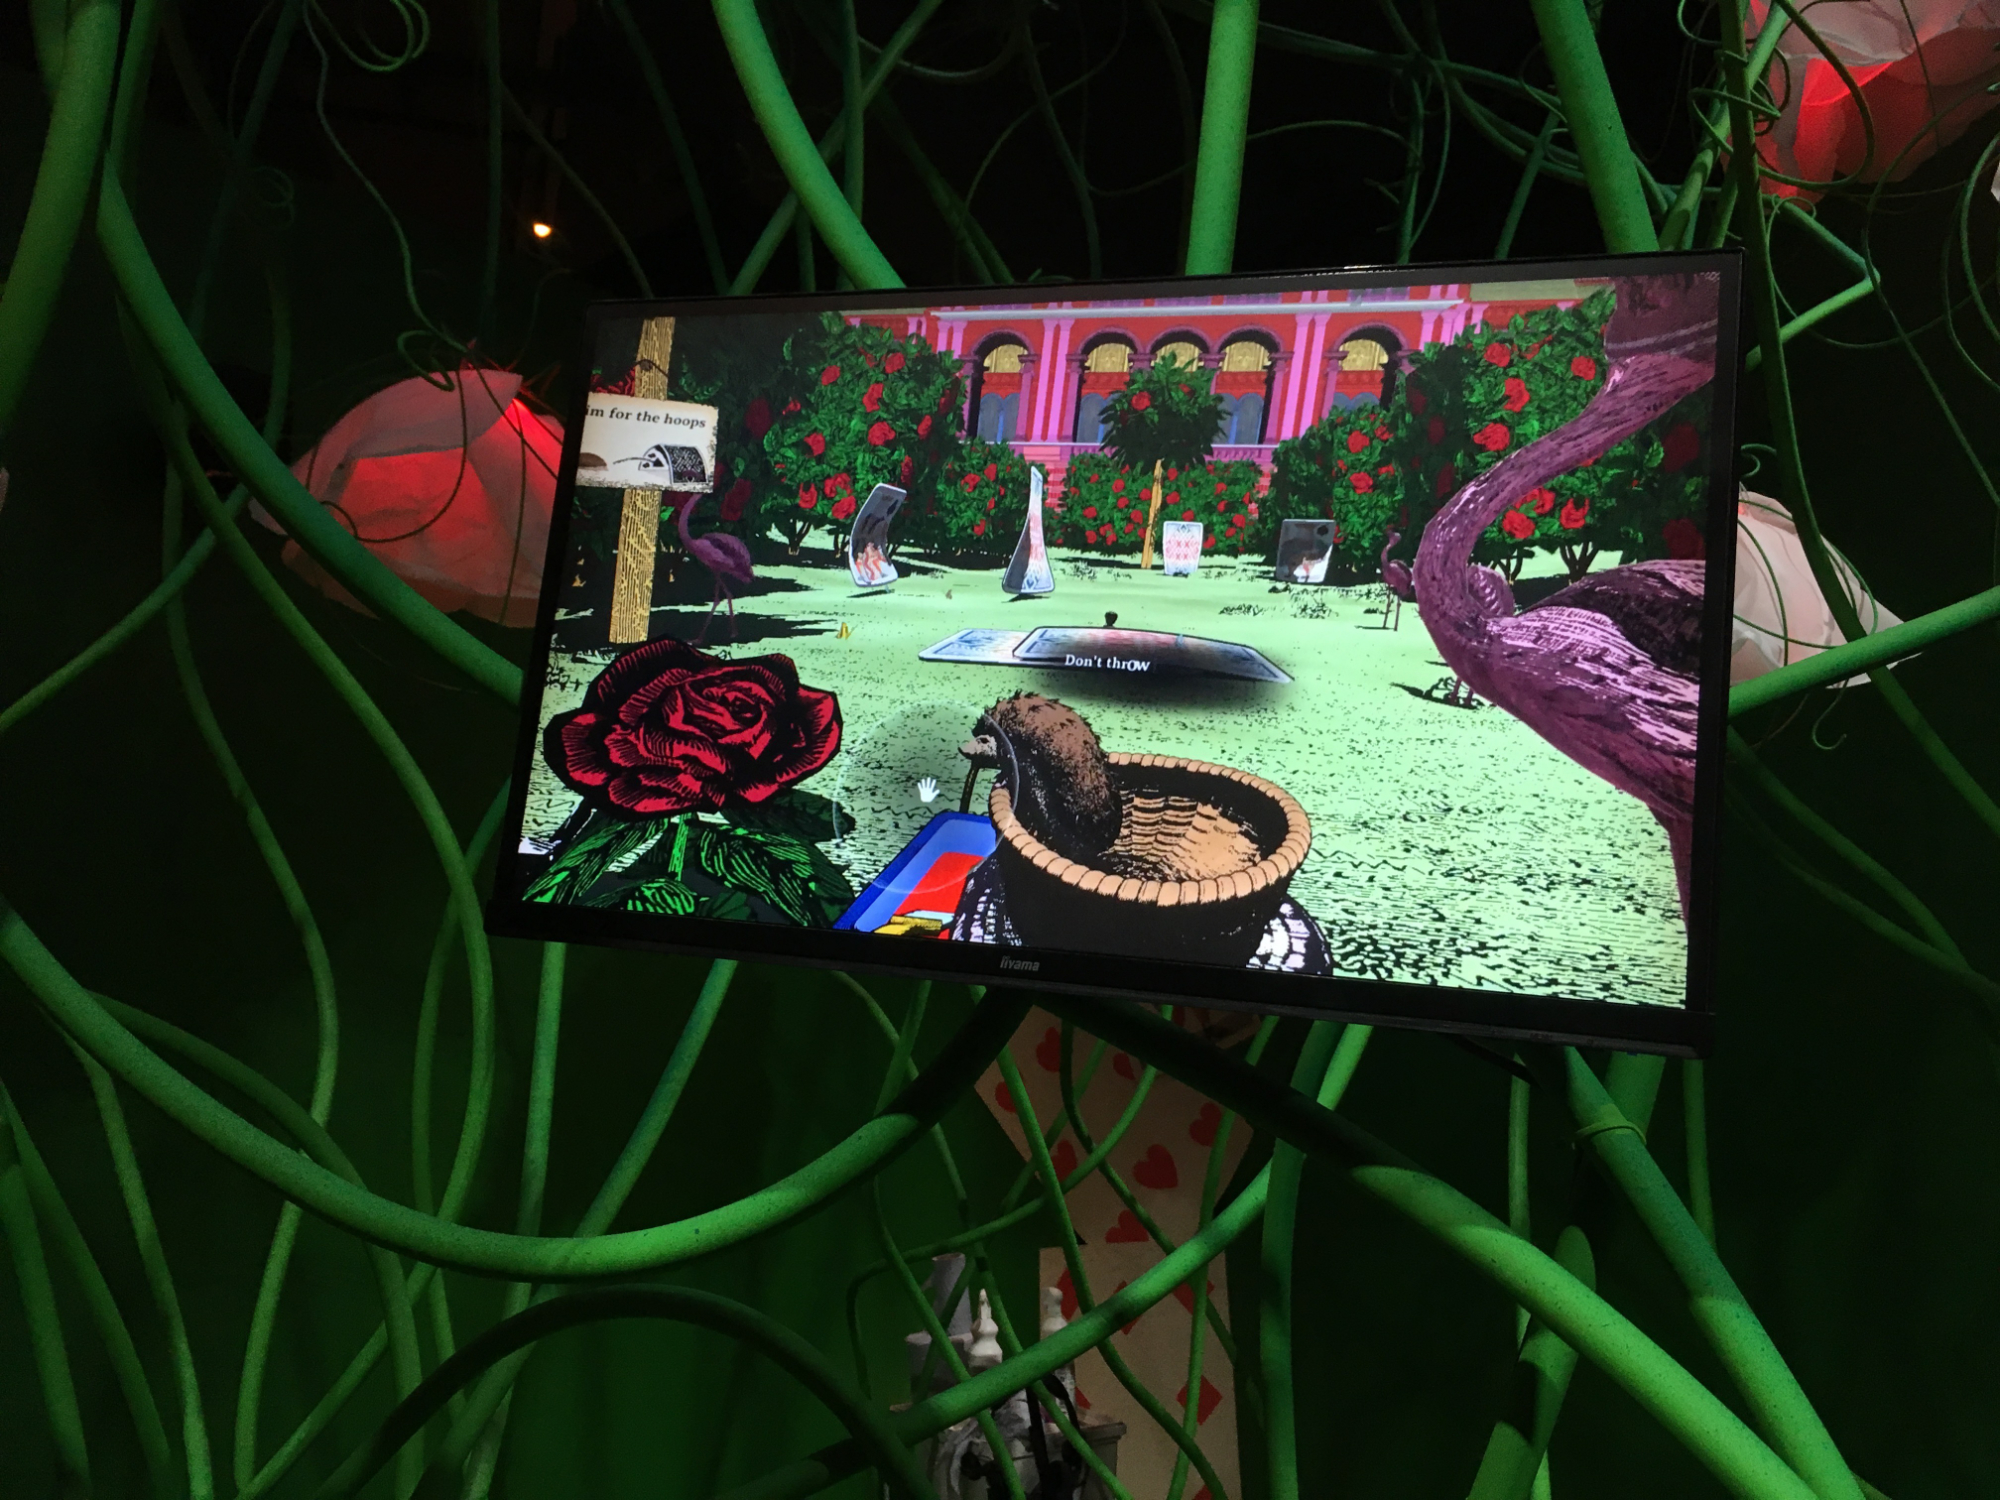 Visitors can play croquet in 'Curious Alice', a Virtual Reality game.